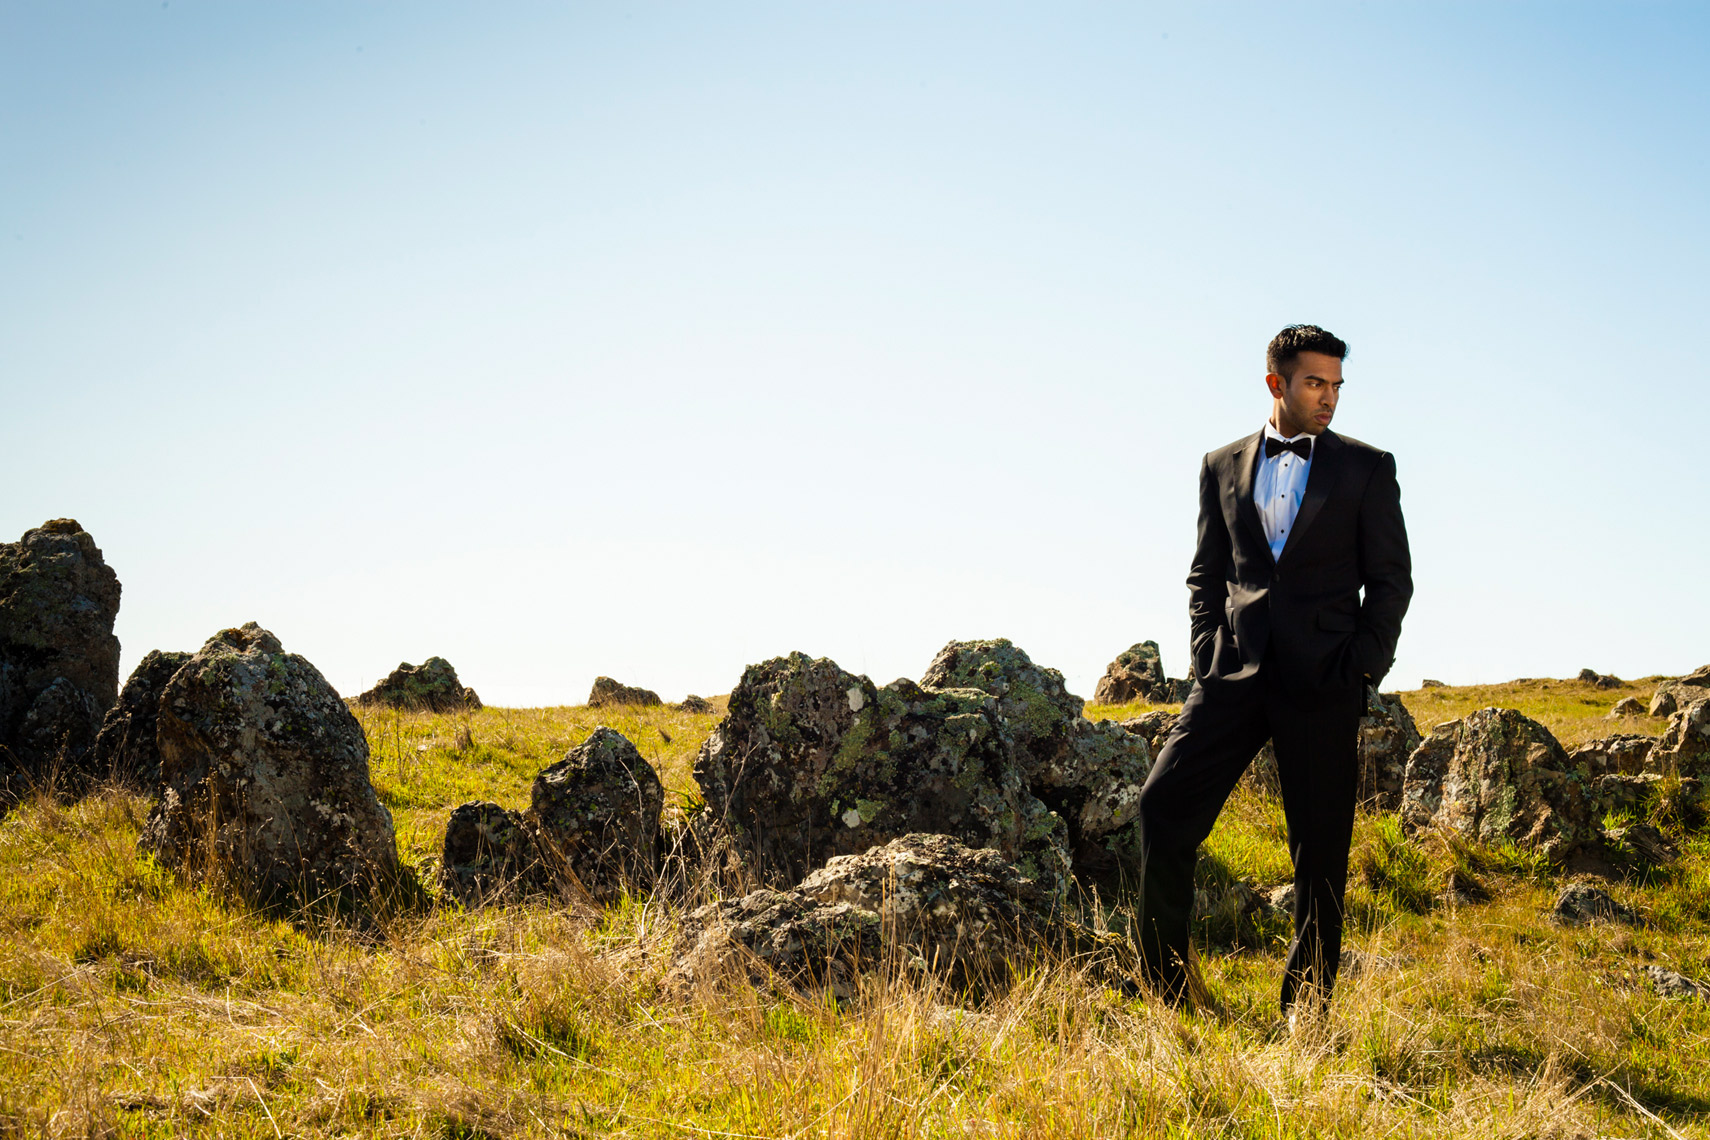 editorial_lifestyle_male_man_tuxedo_nature_landscape_Amanda_Hibbert_Photography_1__MG_4633_DesignX